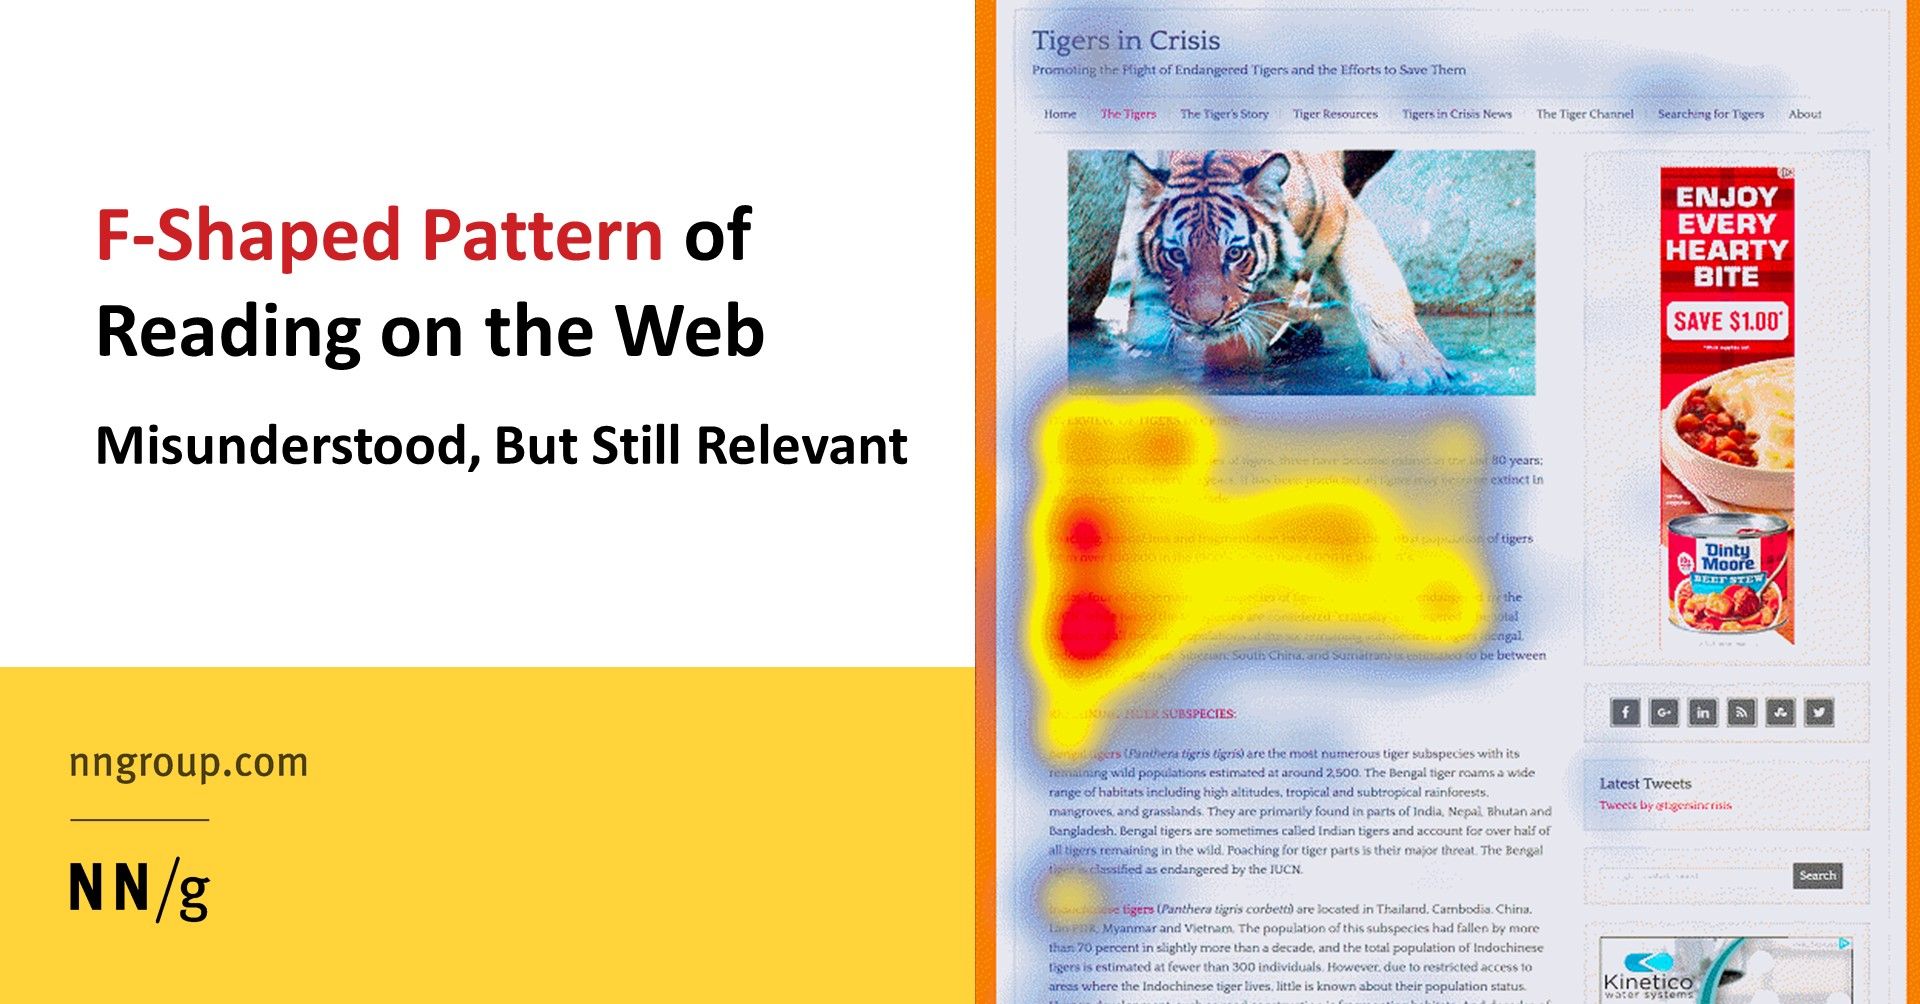 FShaped Pattern of Reading on the Web Misunderstood But Still Relevant Even on Mobile